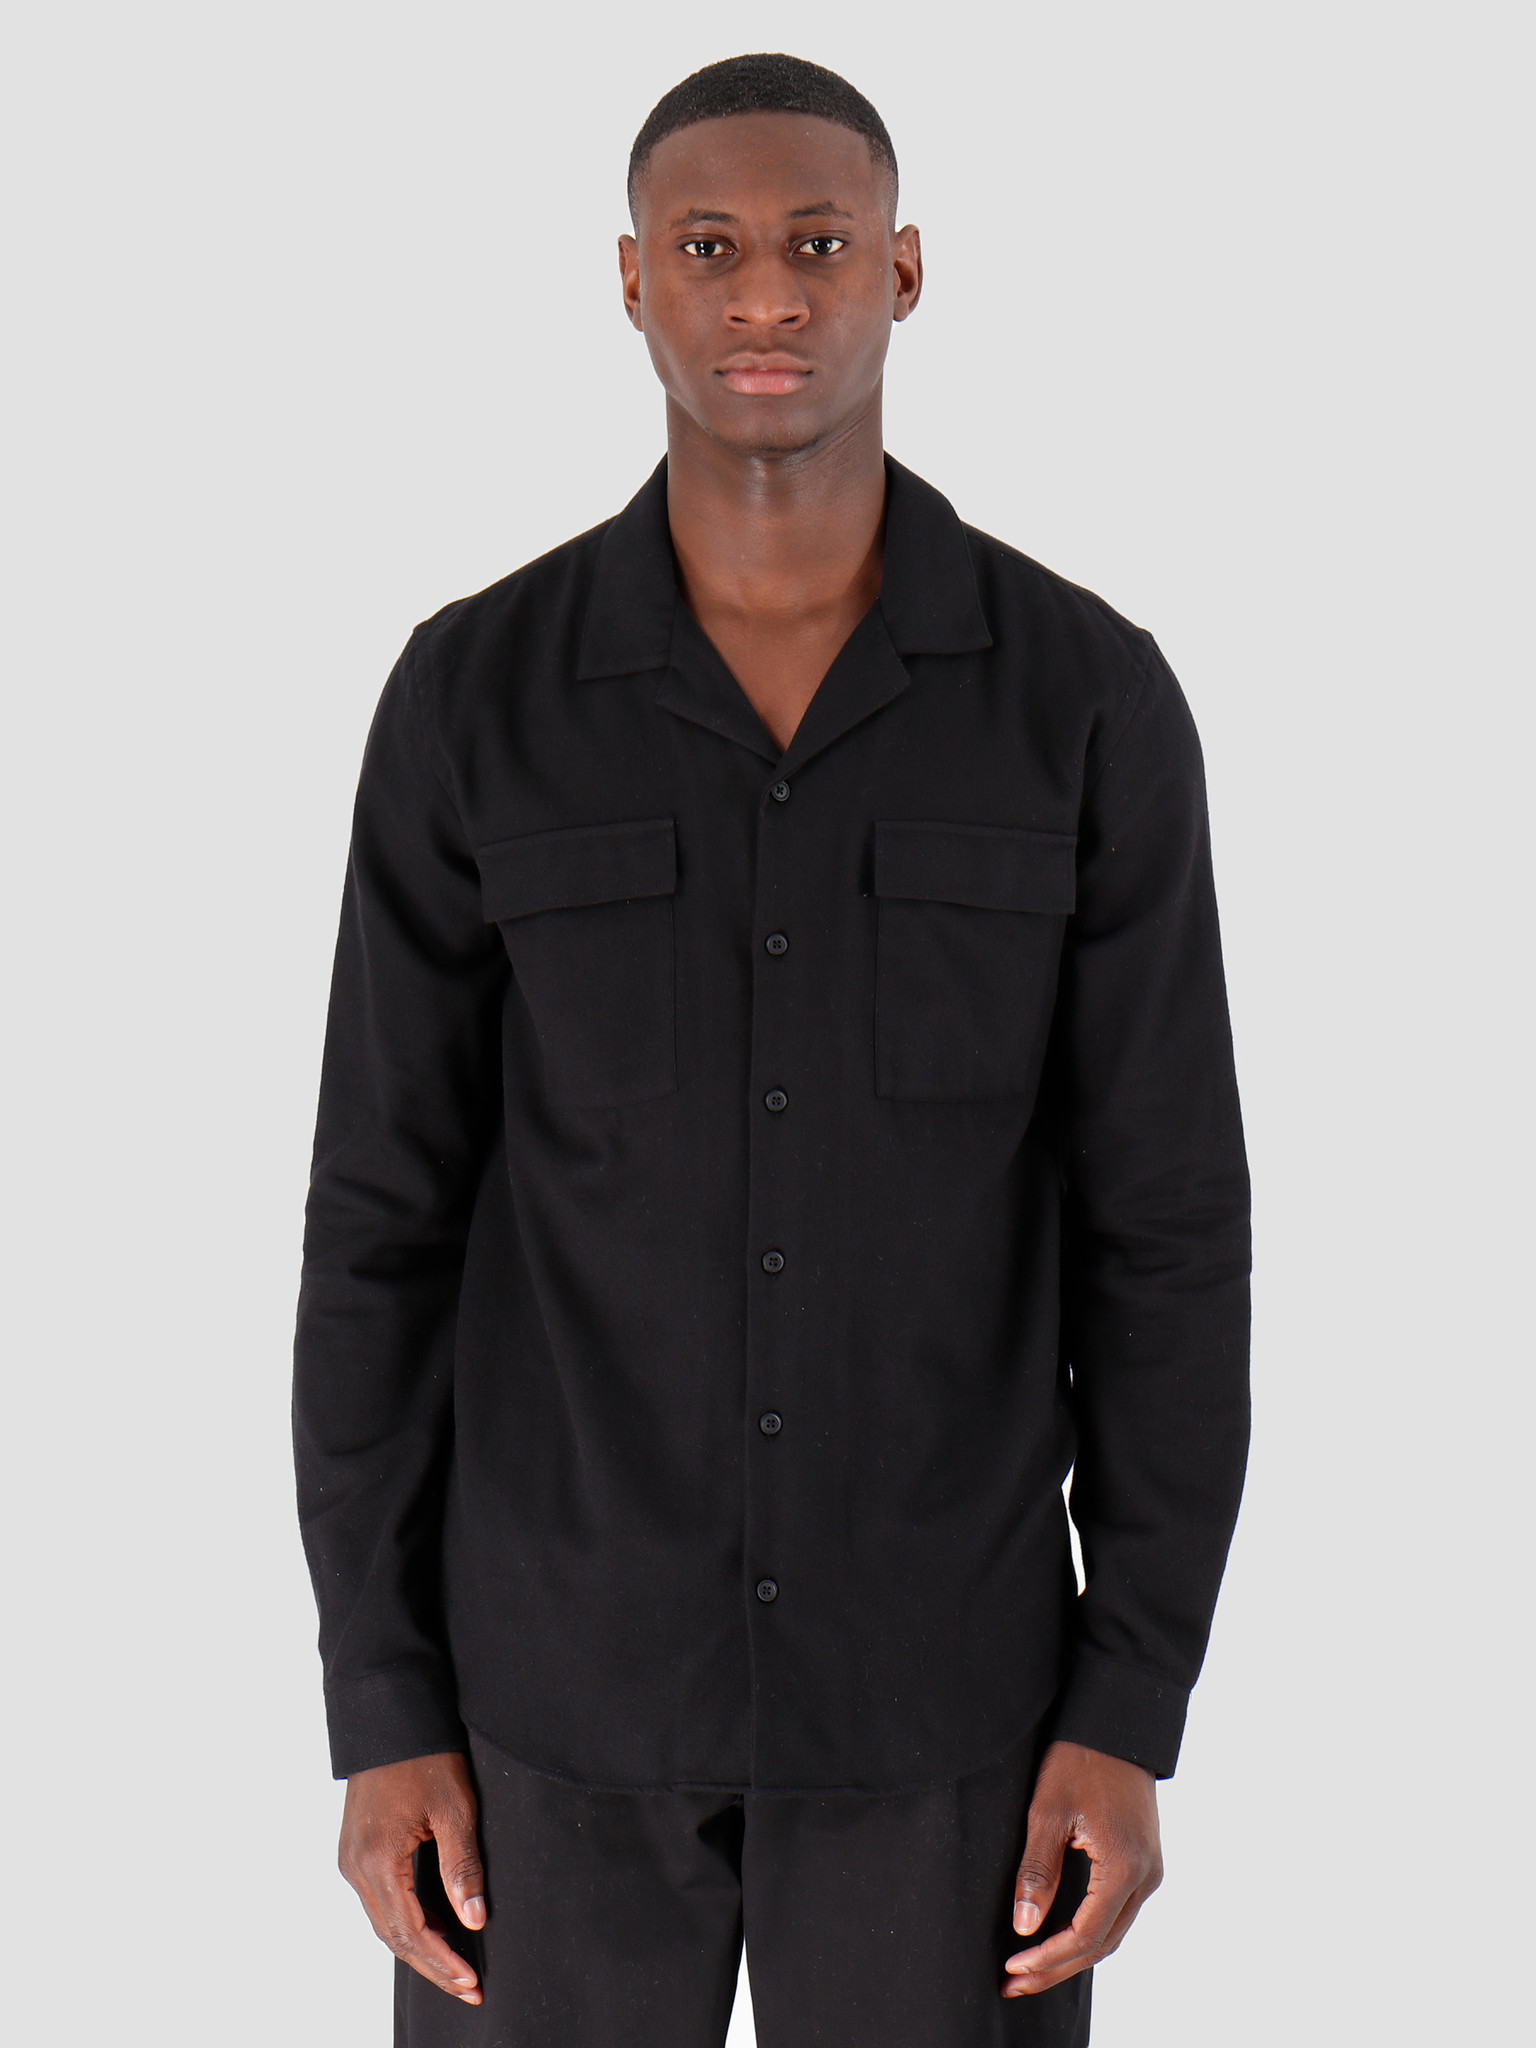 Libertine Libertine Cave Pocket Dress Shirt Black 1739